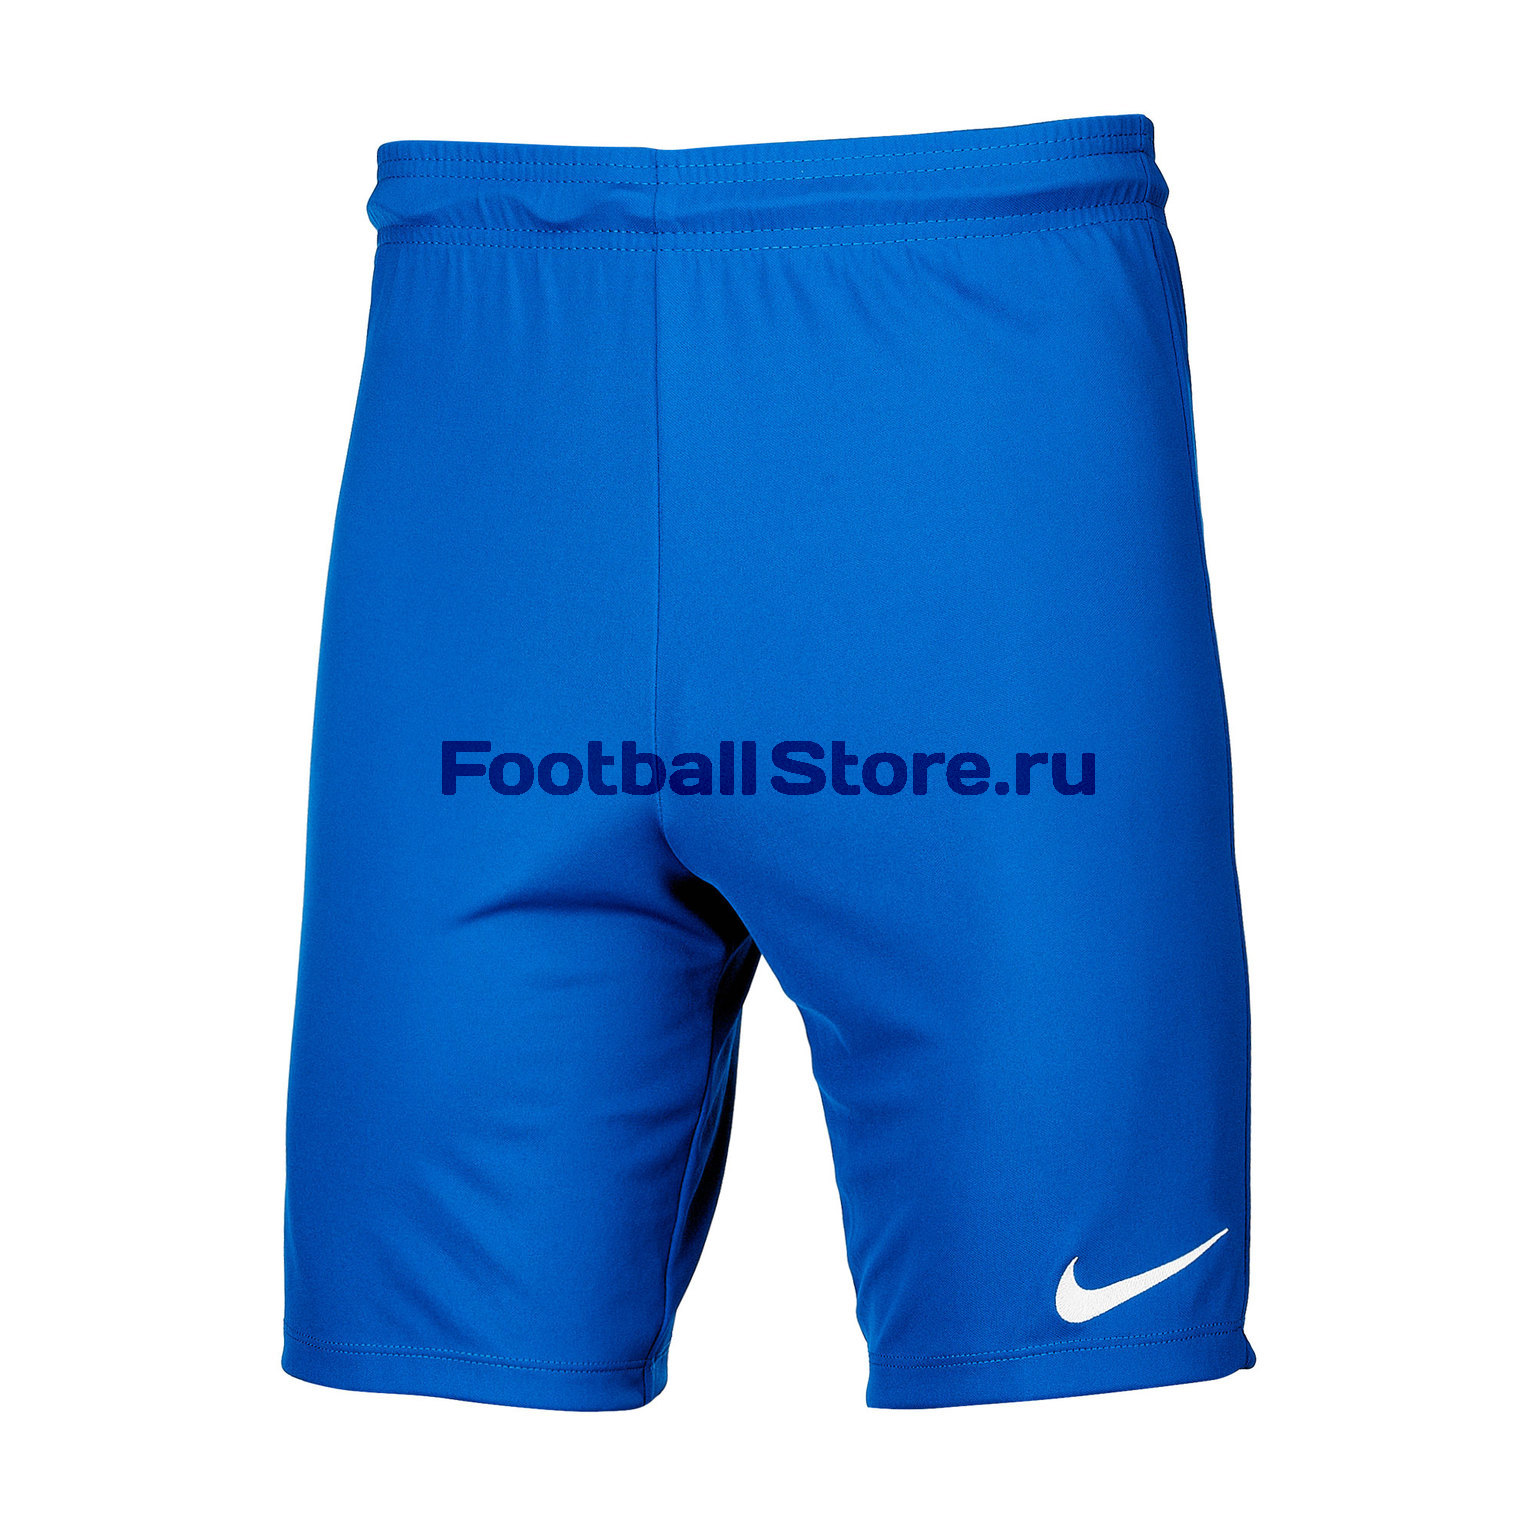 Шорты Nike Шорты Nike Park II KNIT Short NB 725887-463